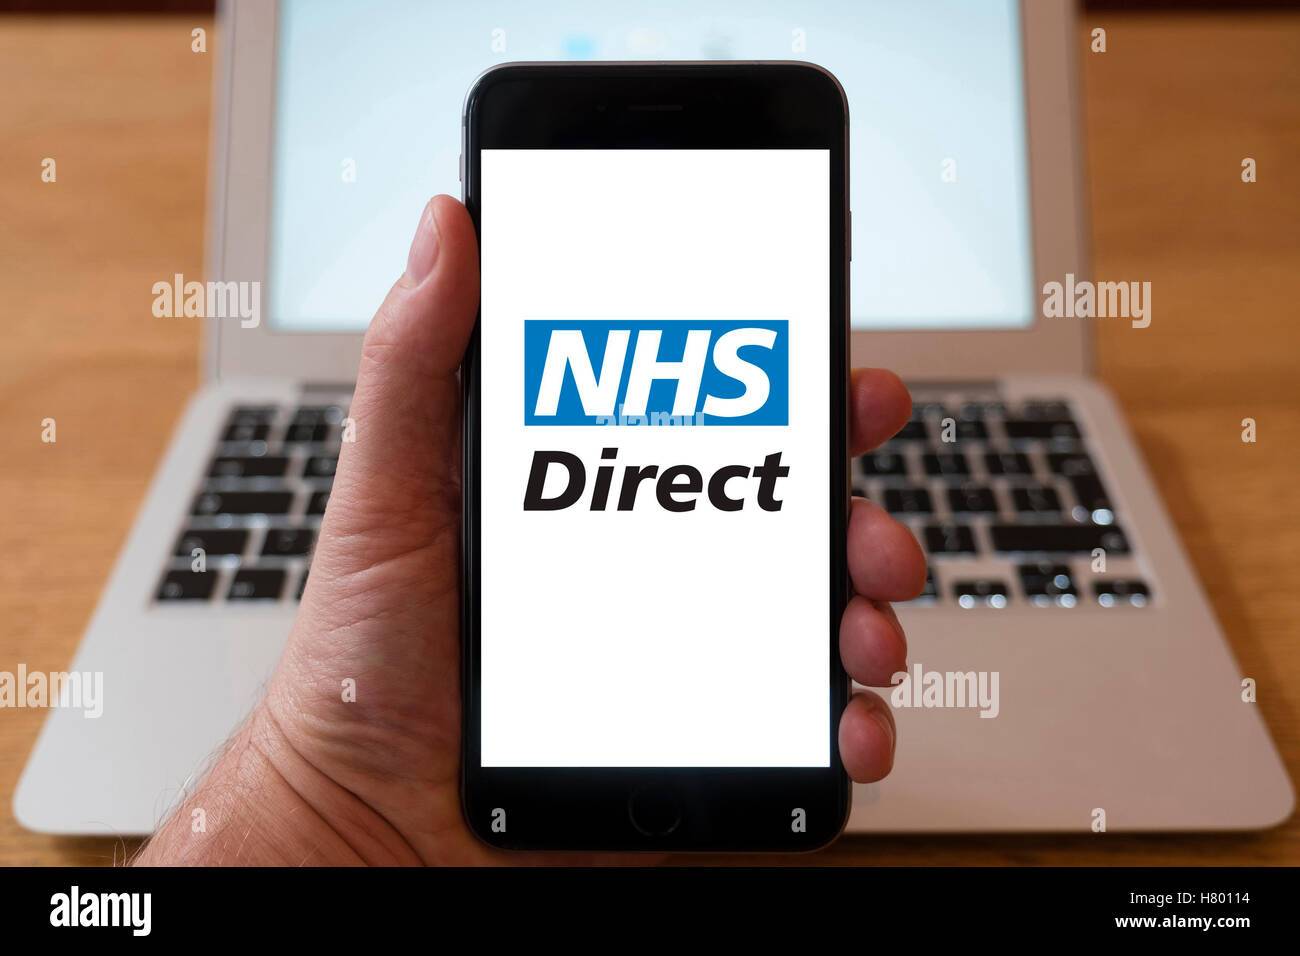 Using iPhone smartphone to display logo of NHS Direct , National Health Service website Stock Photo